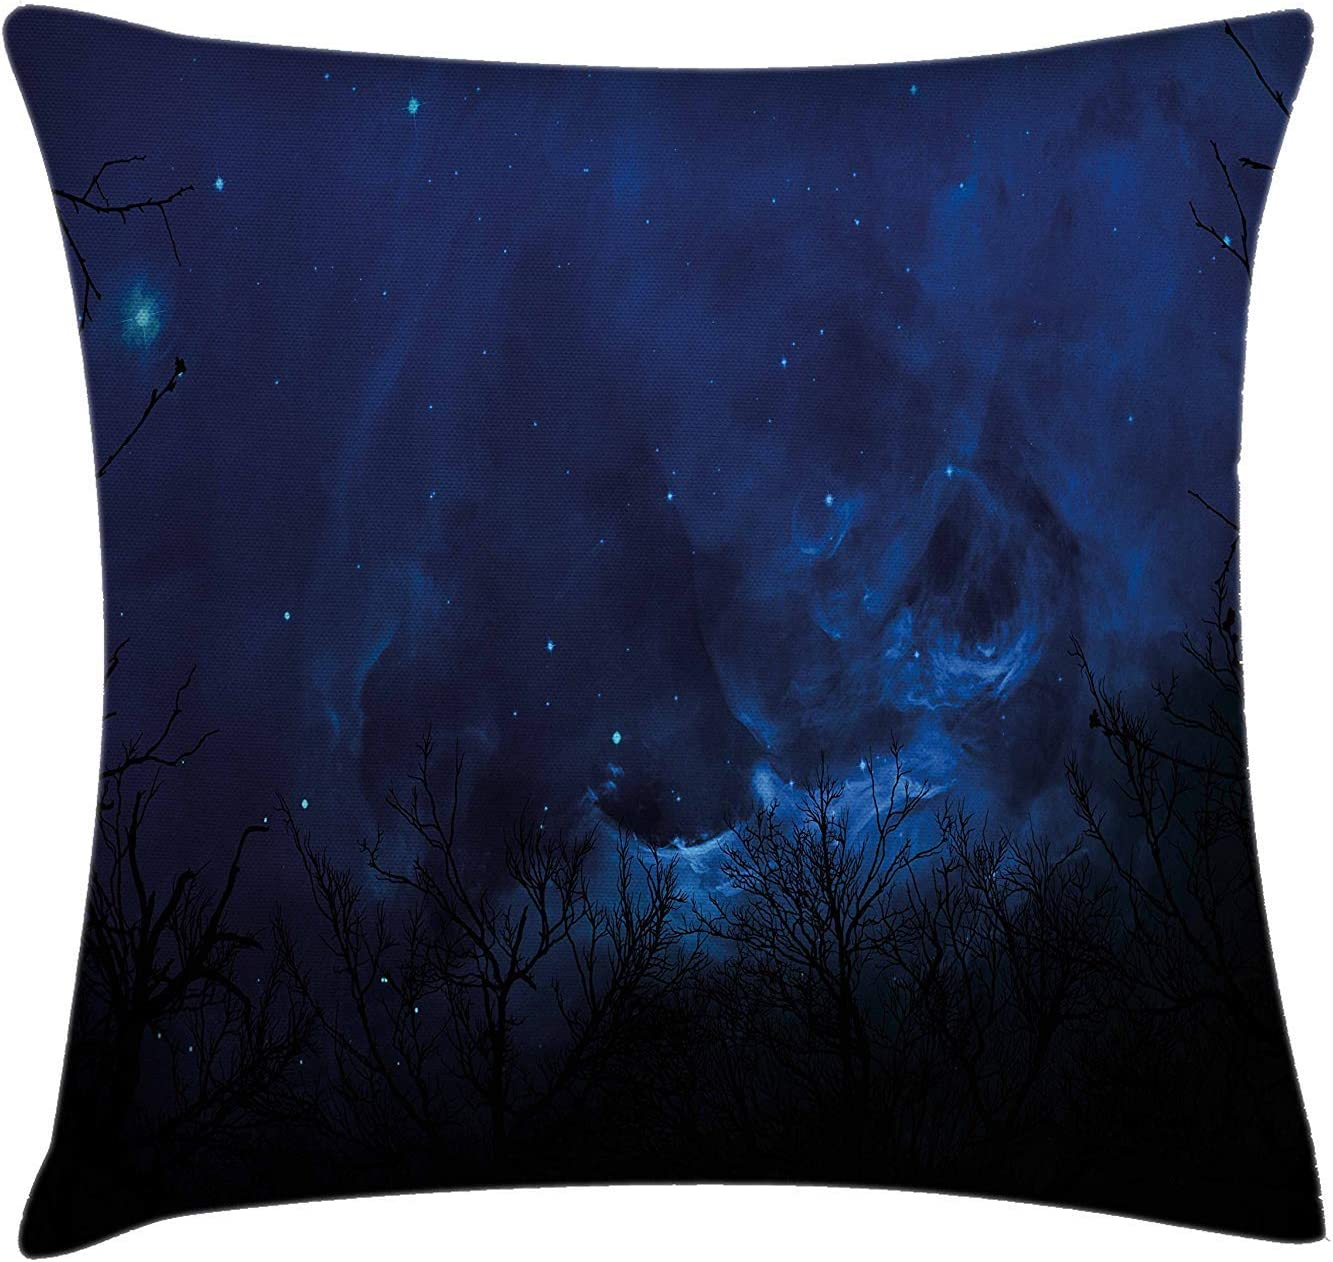 YABABY Night Sky Throw Pillow Cushion Cover, Deep Forest Branches Nocturnal Atmosphere Stars Nebula Space Artwork, Decorative Square Accent Pillow Case, 18 X 18 inches, Dark Blue and Black